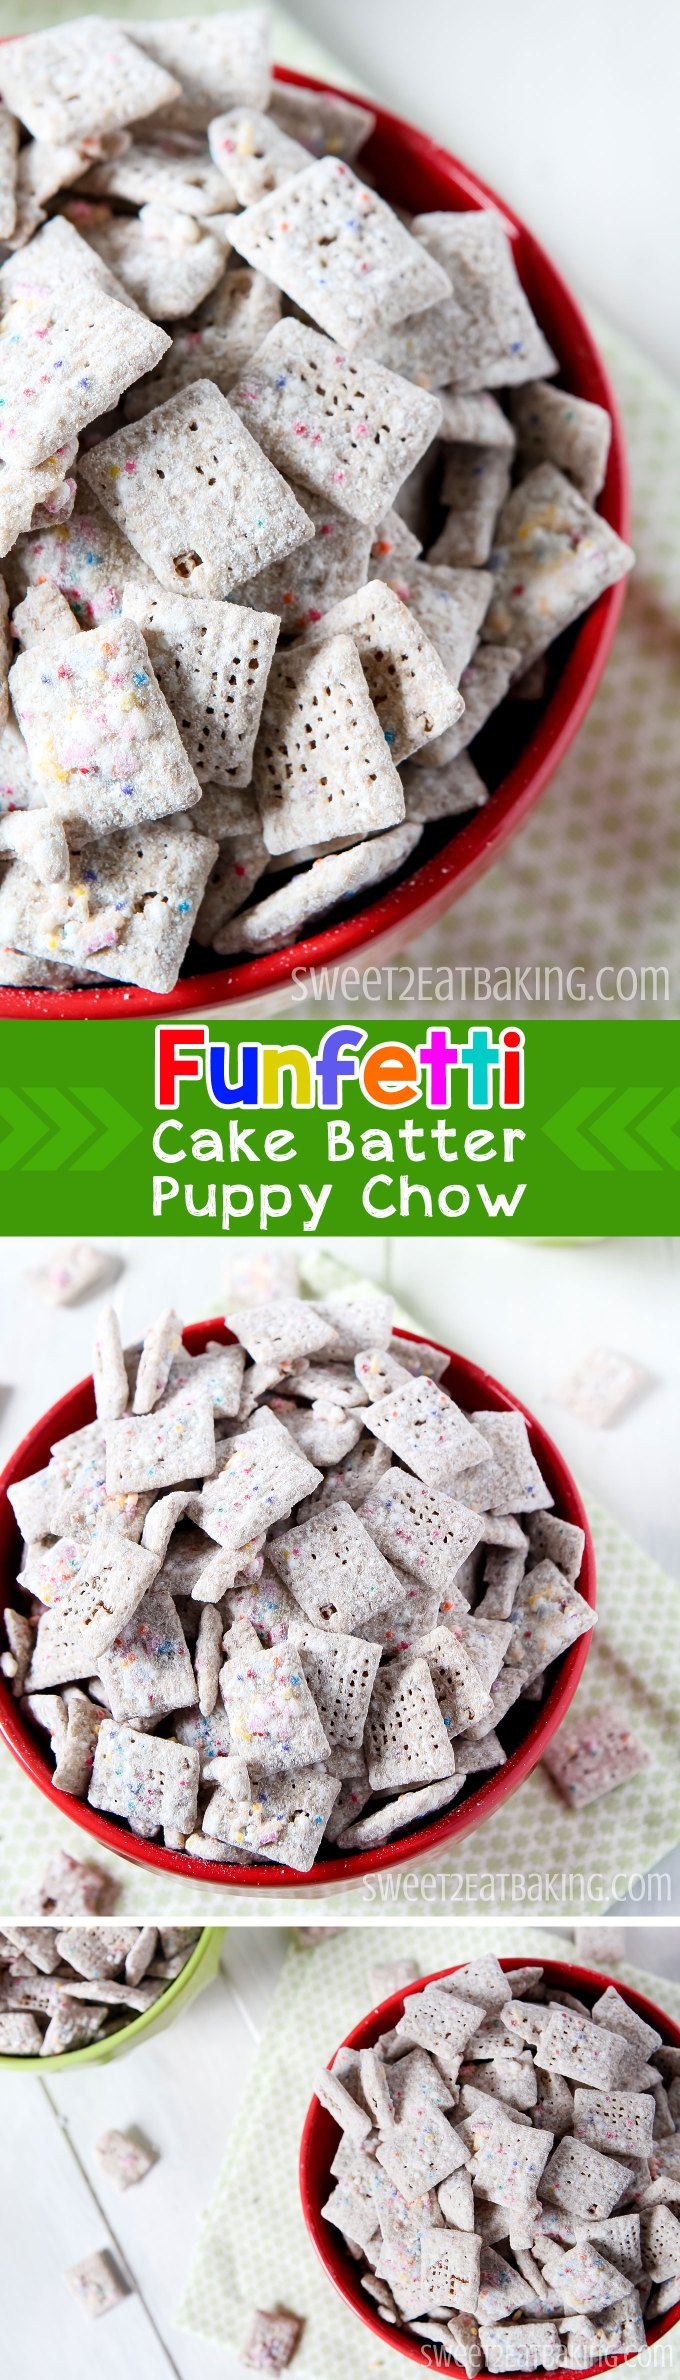 Funfetti Cake Batter Puppy Chow (Muddy Buddies) Chex Recipe by Sweet2EatBaking.com